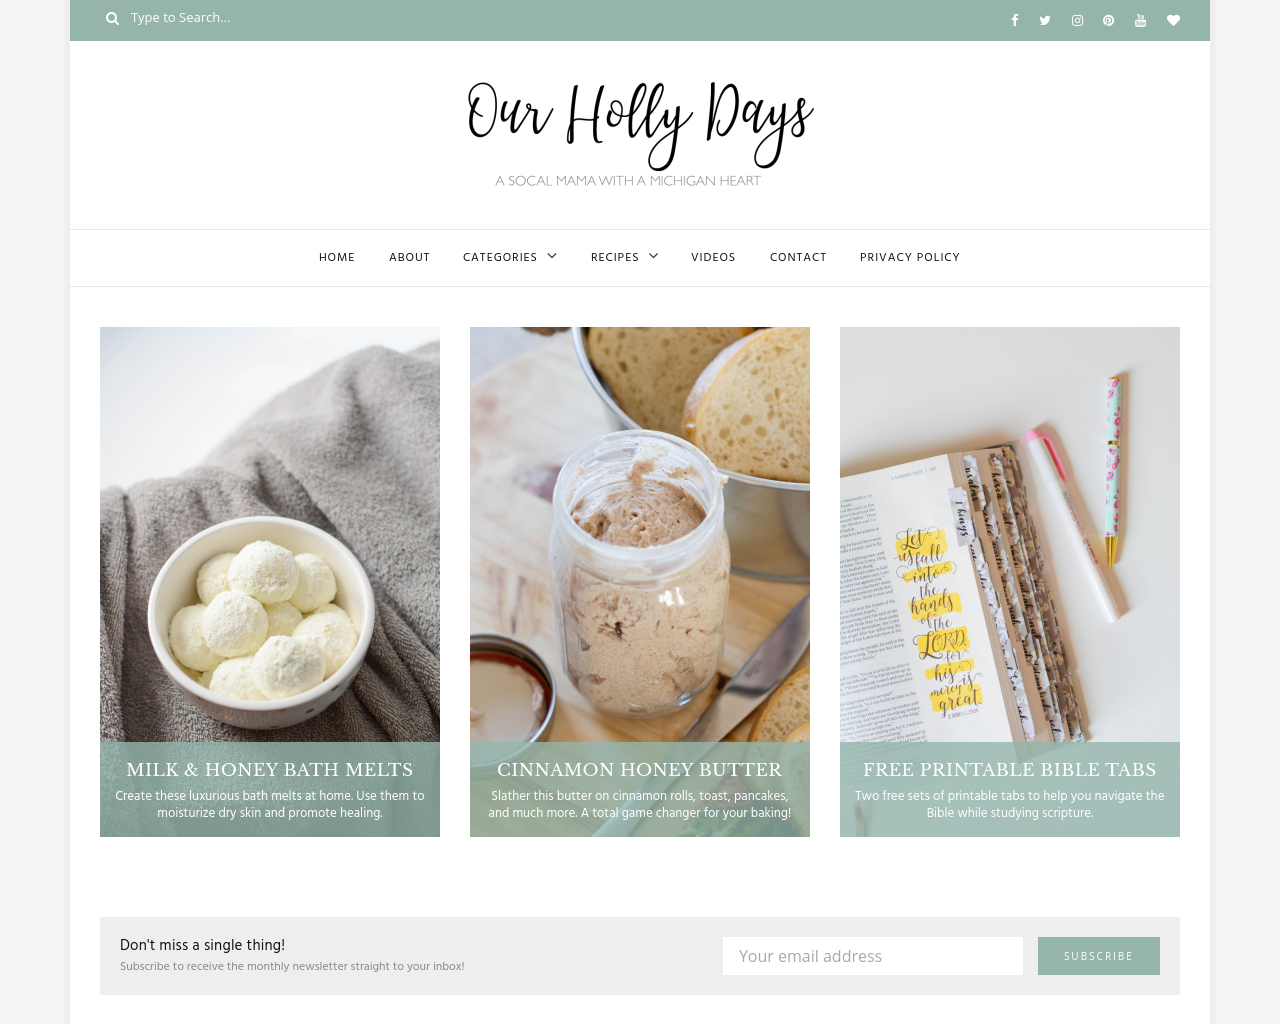 Our-Holly-Days-Advertising-Reviews-Pricing